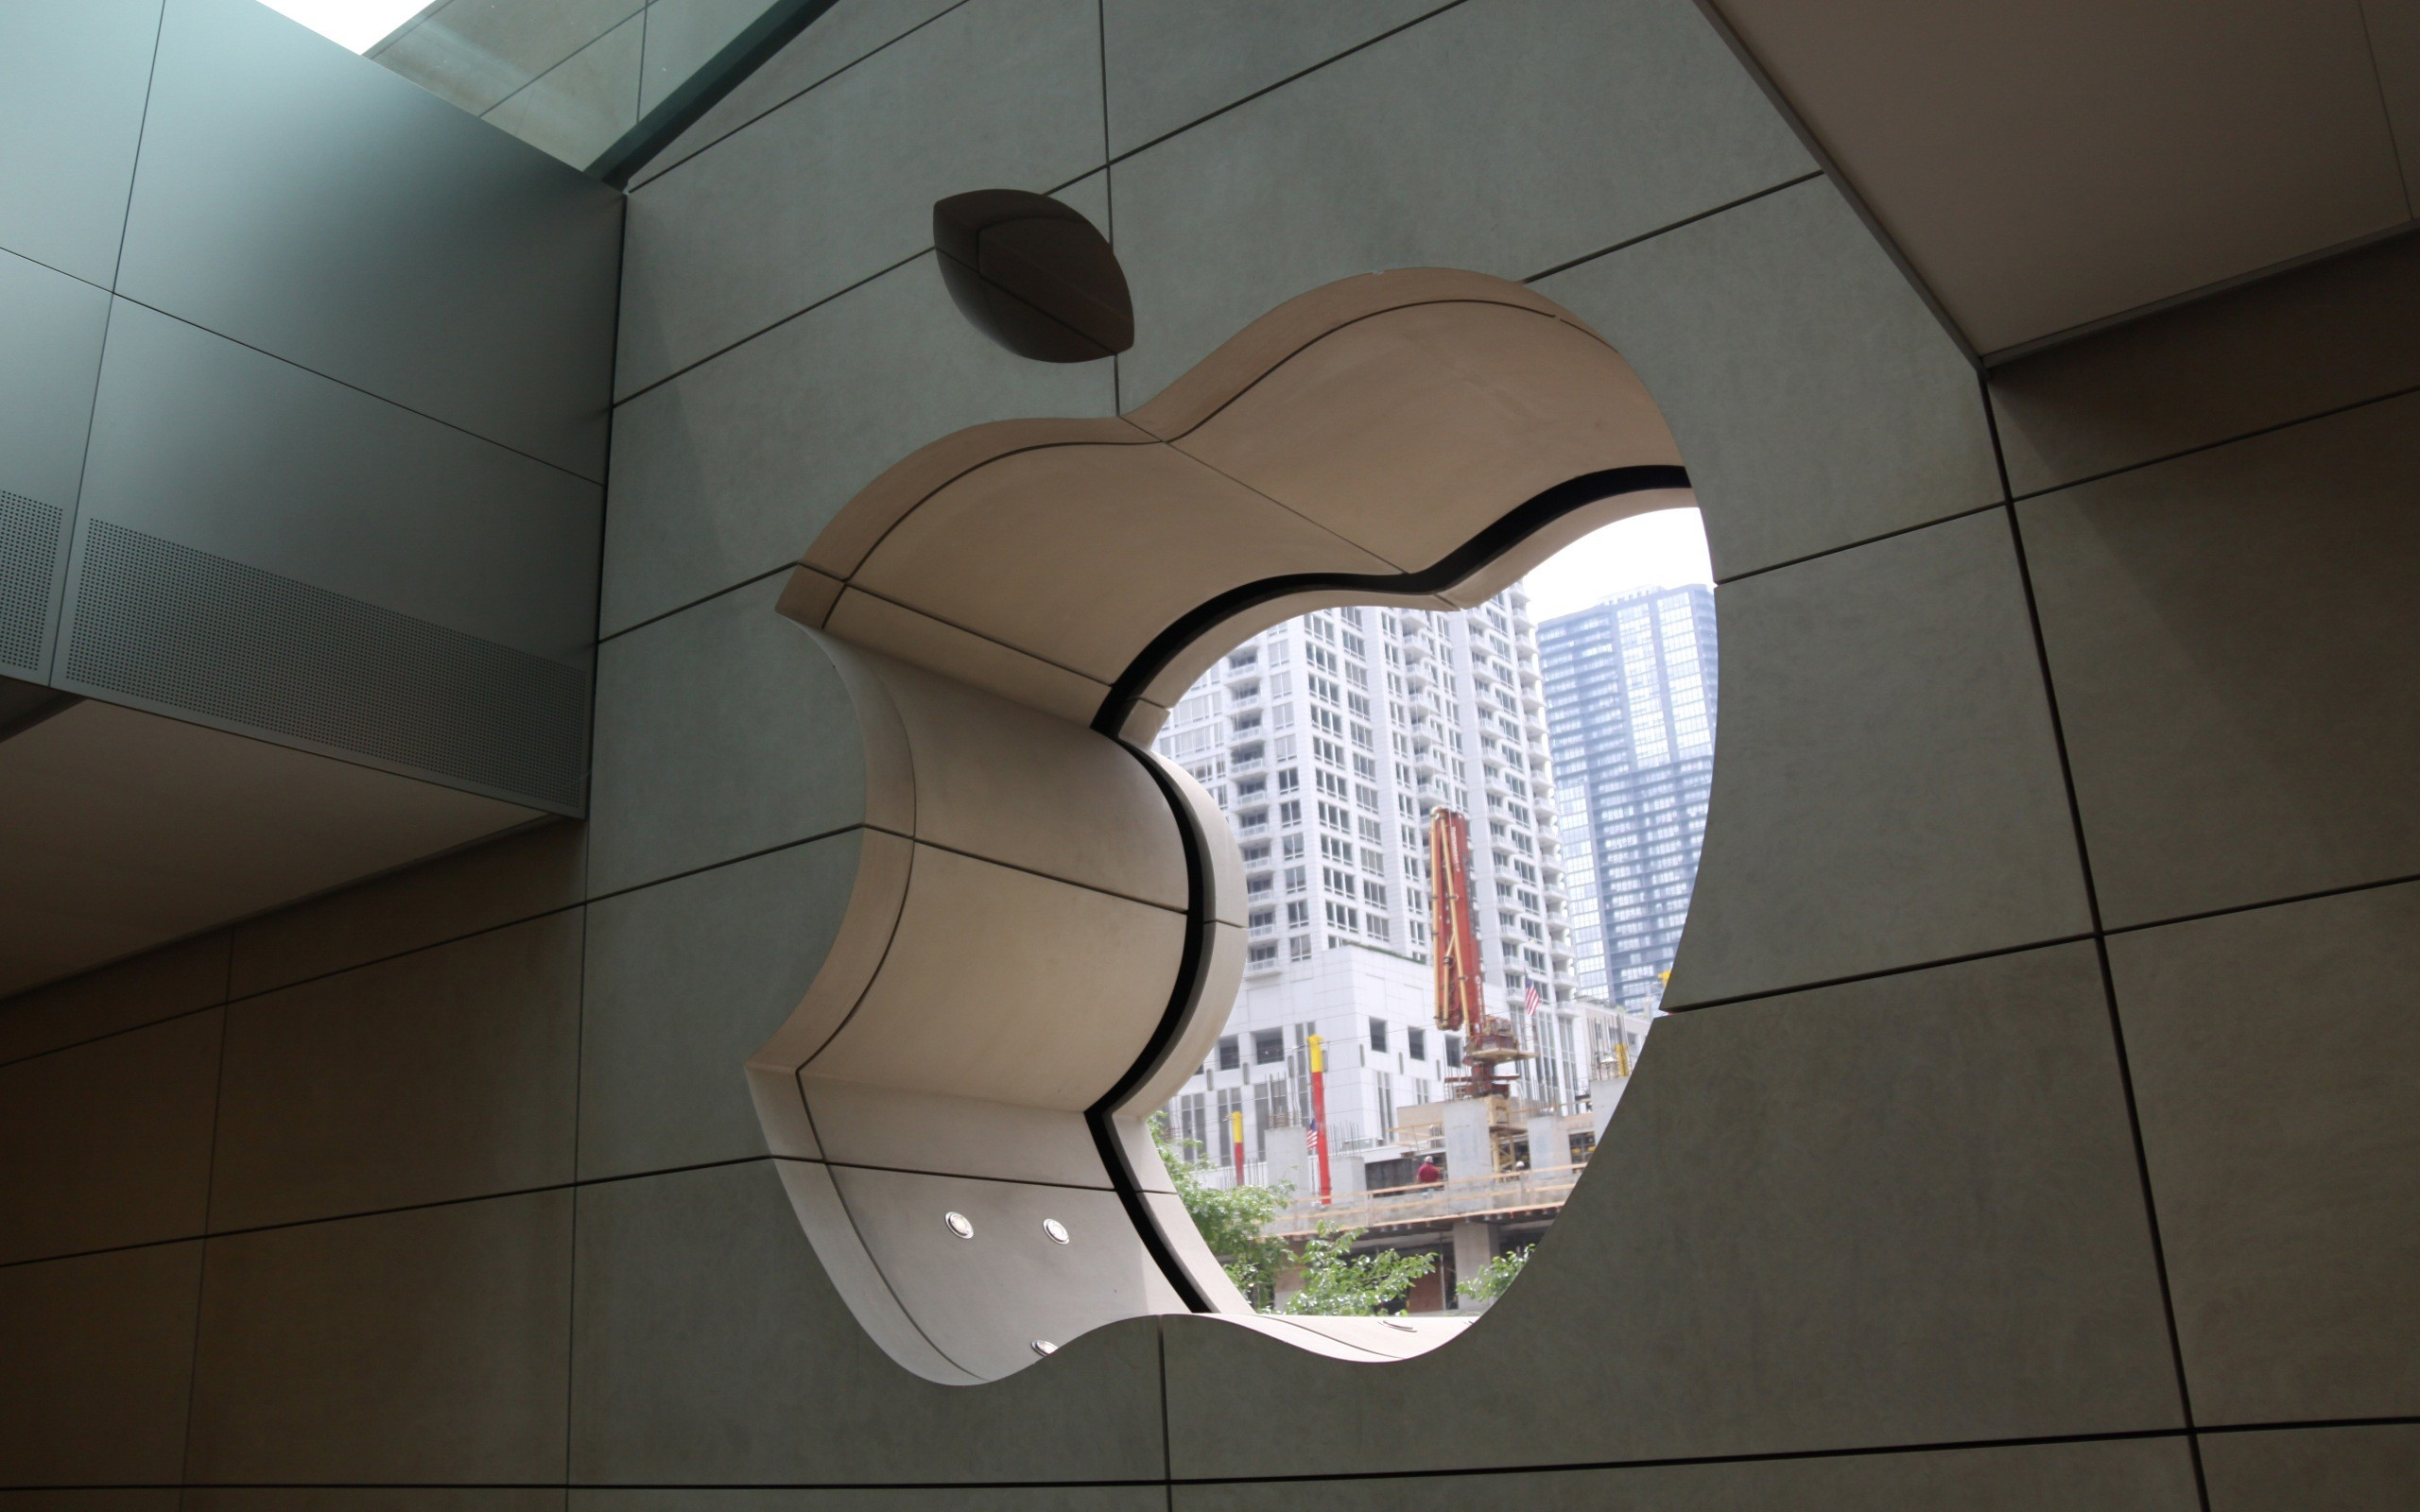 Las Oficinas de Apple - 2560x1600